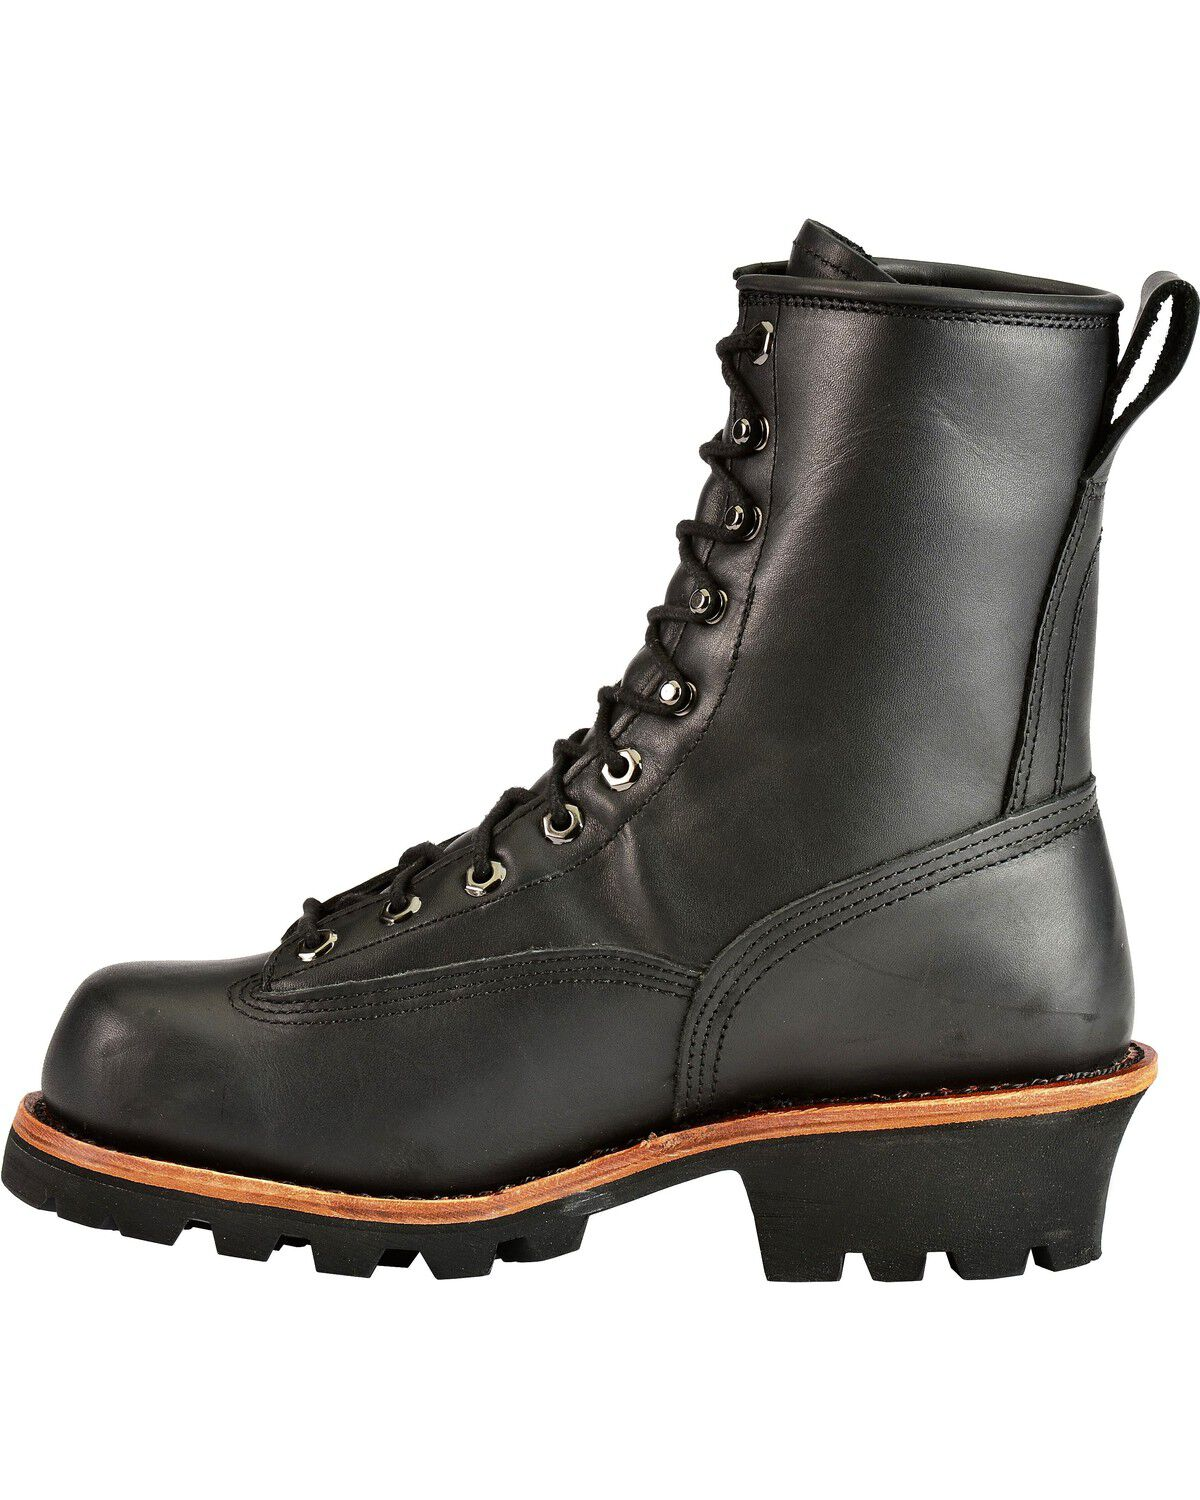 Chippewa Men's Rugged Outdoor Composite